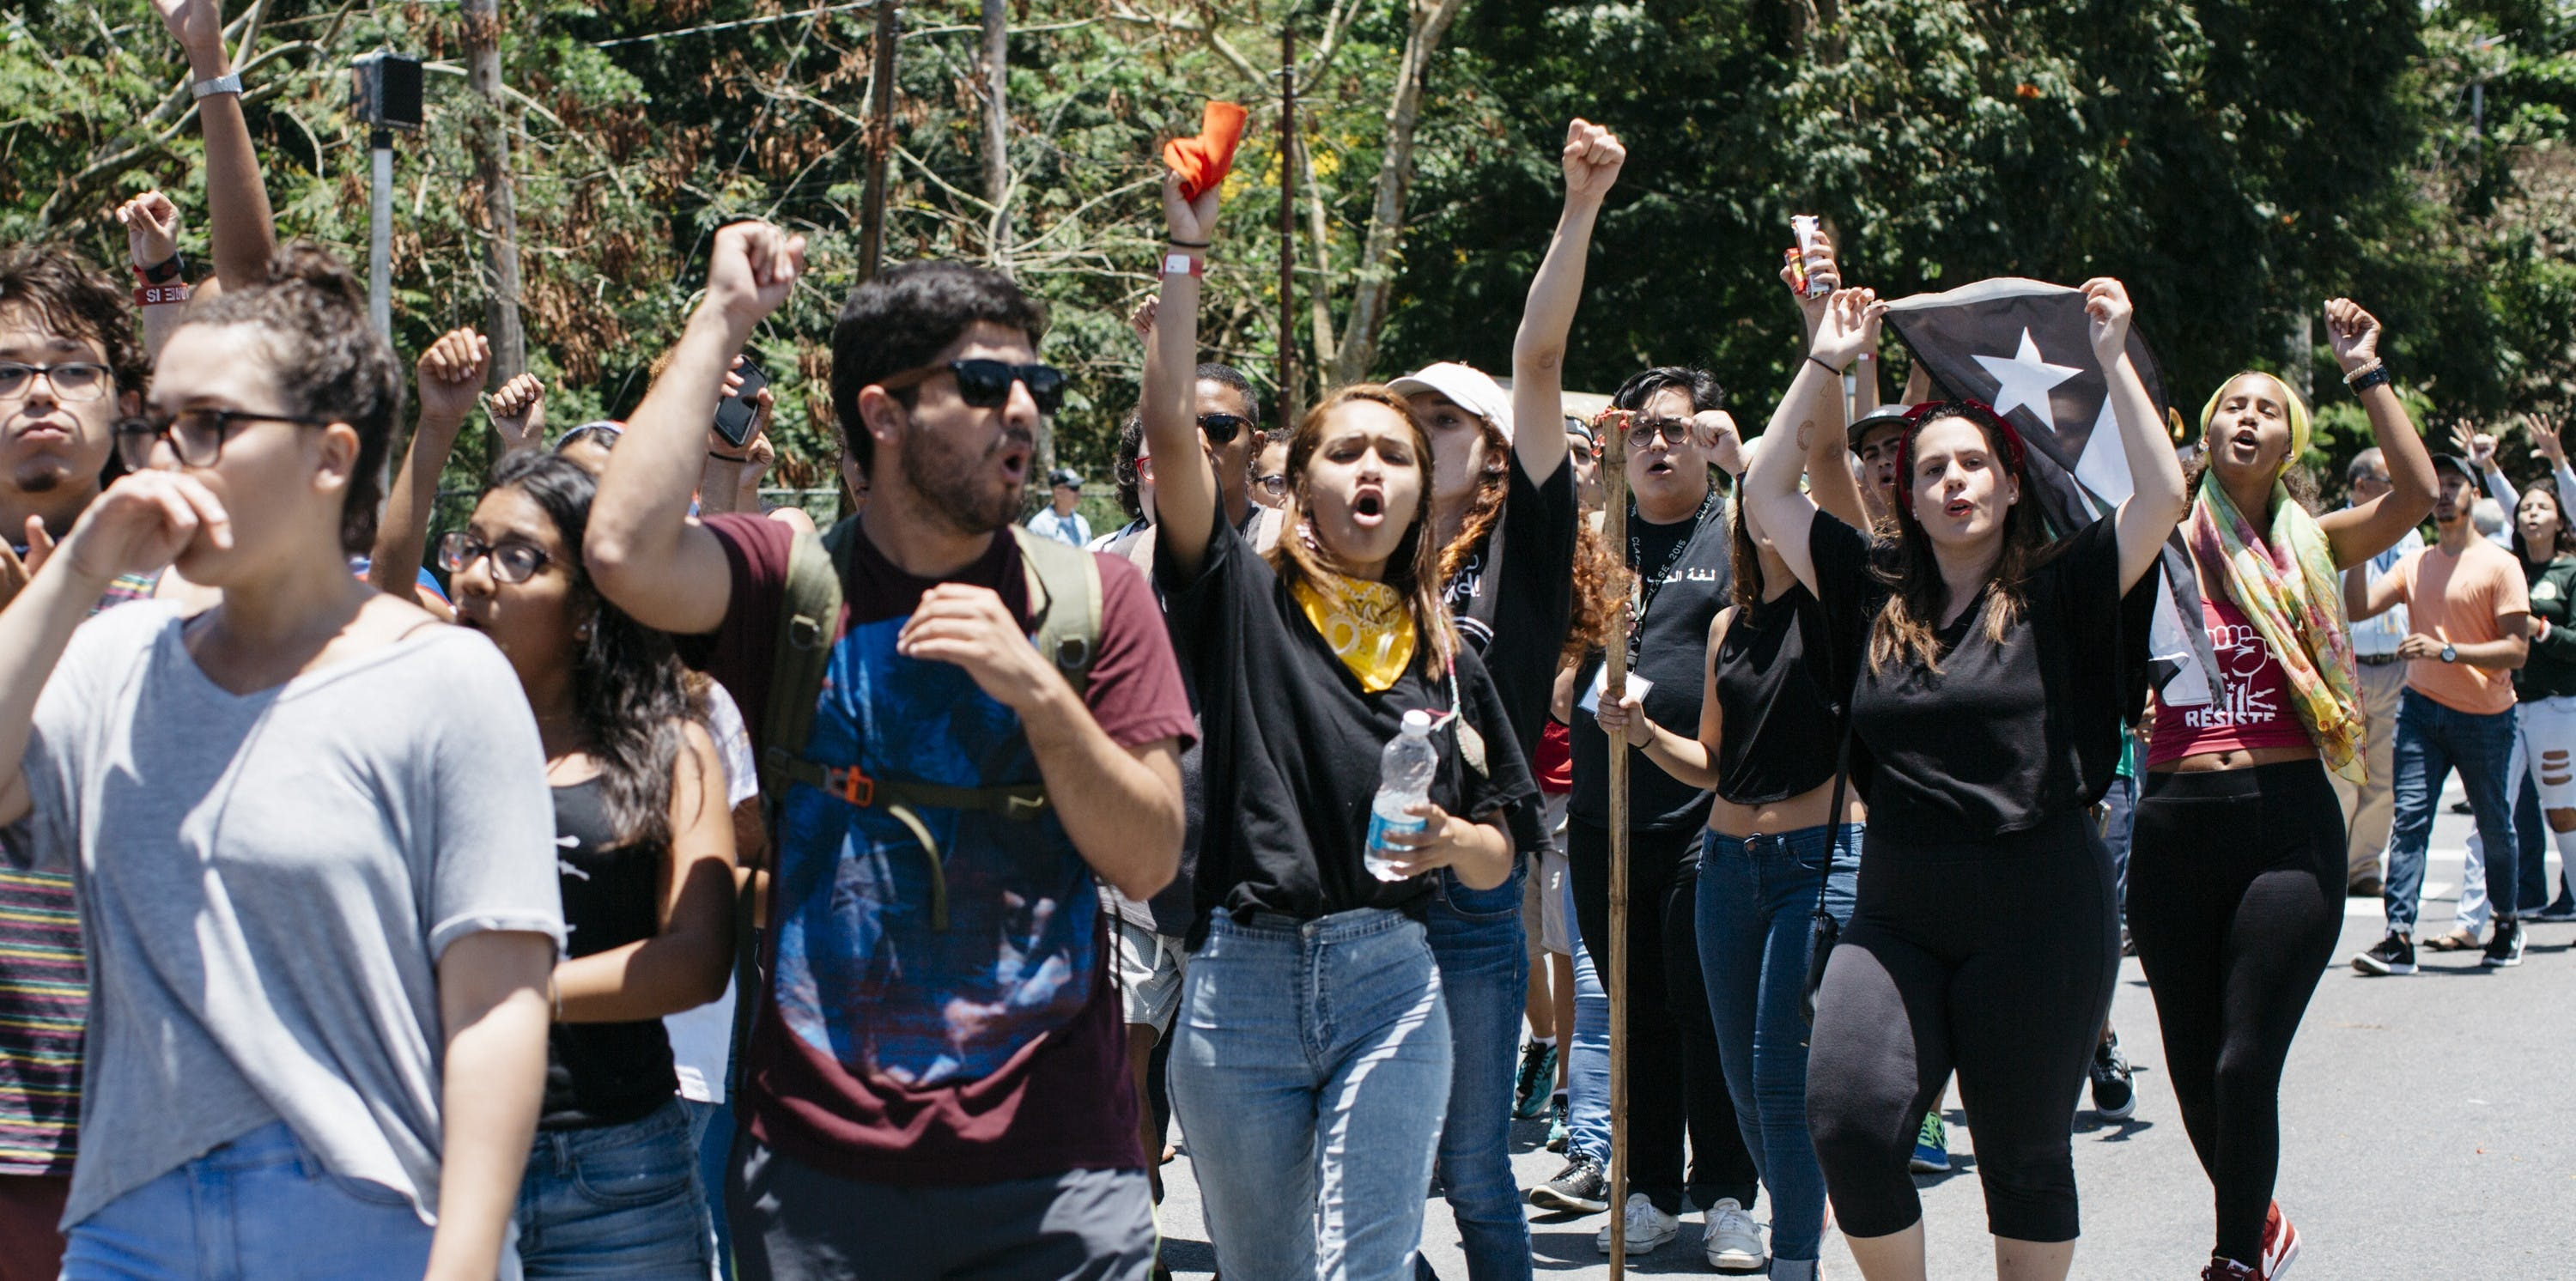 Student Protesters in Puerto Rico Face Trial as Government Criminalizes Dissent